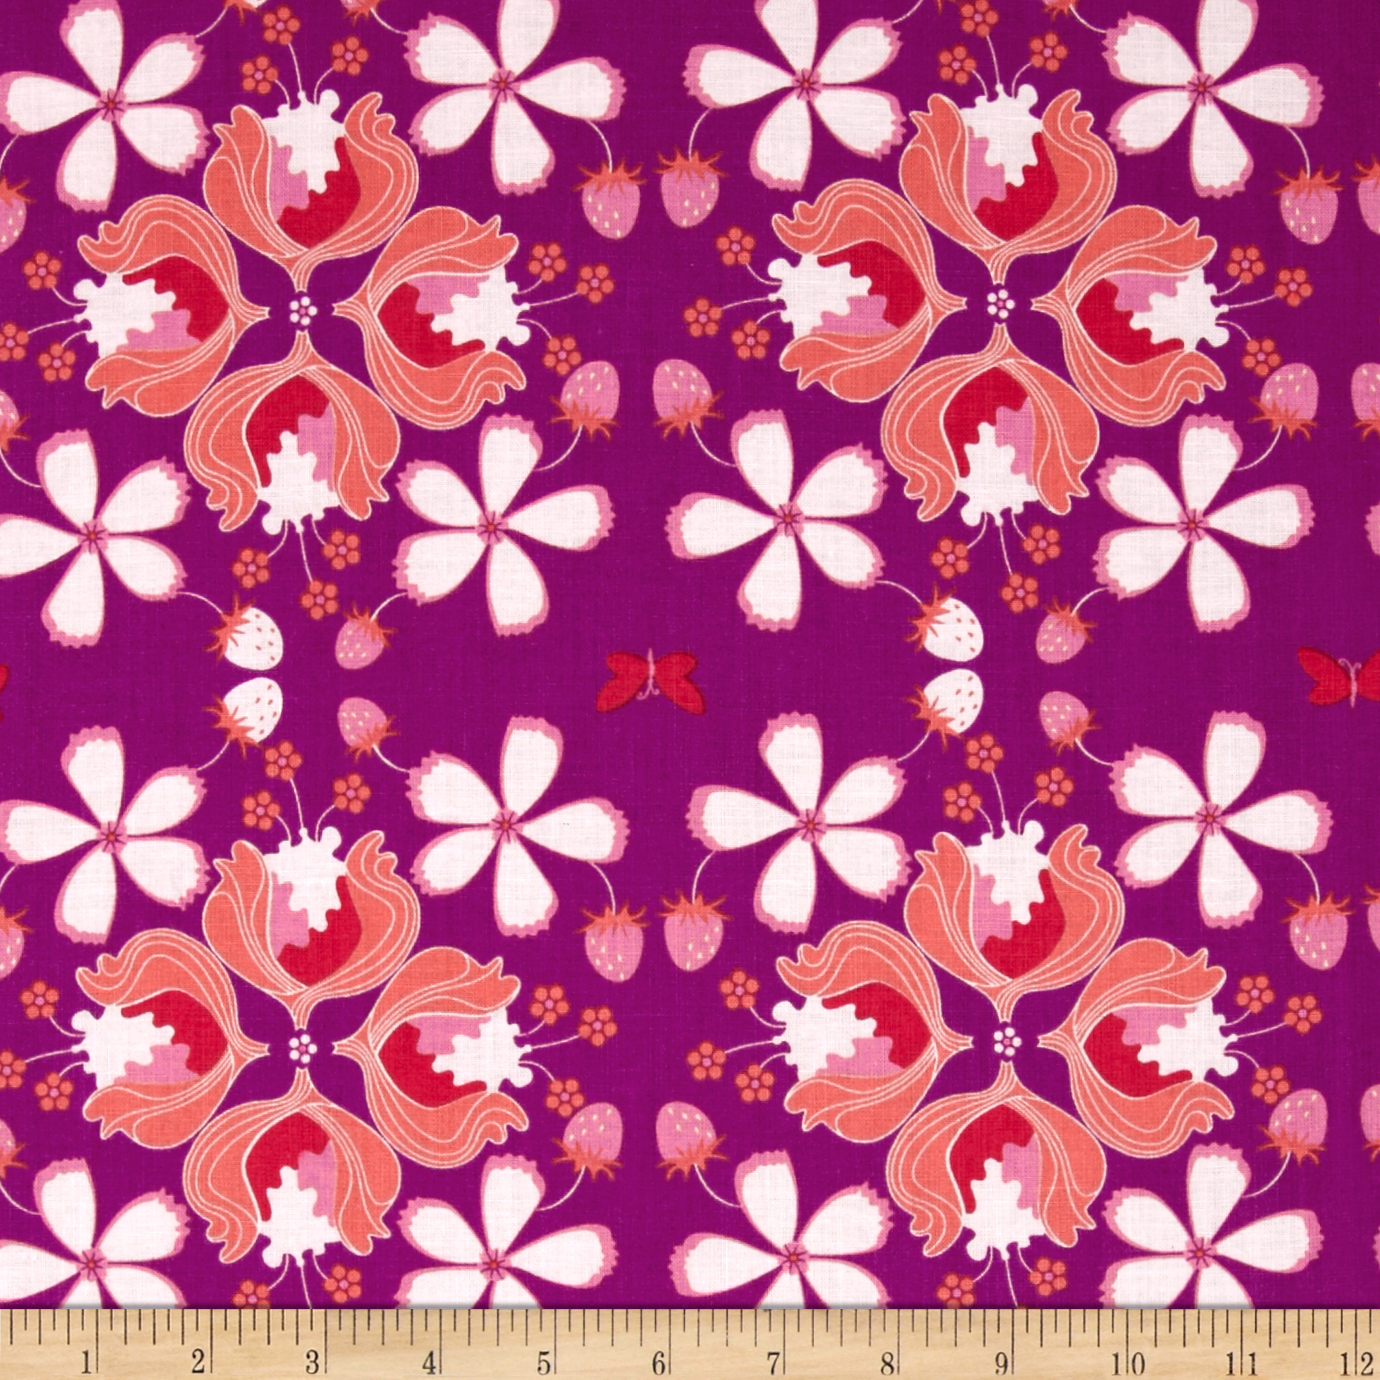 Hot House Flowers Floral Allover Orchid Fabric